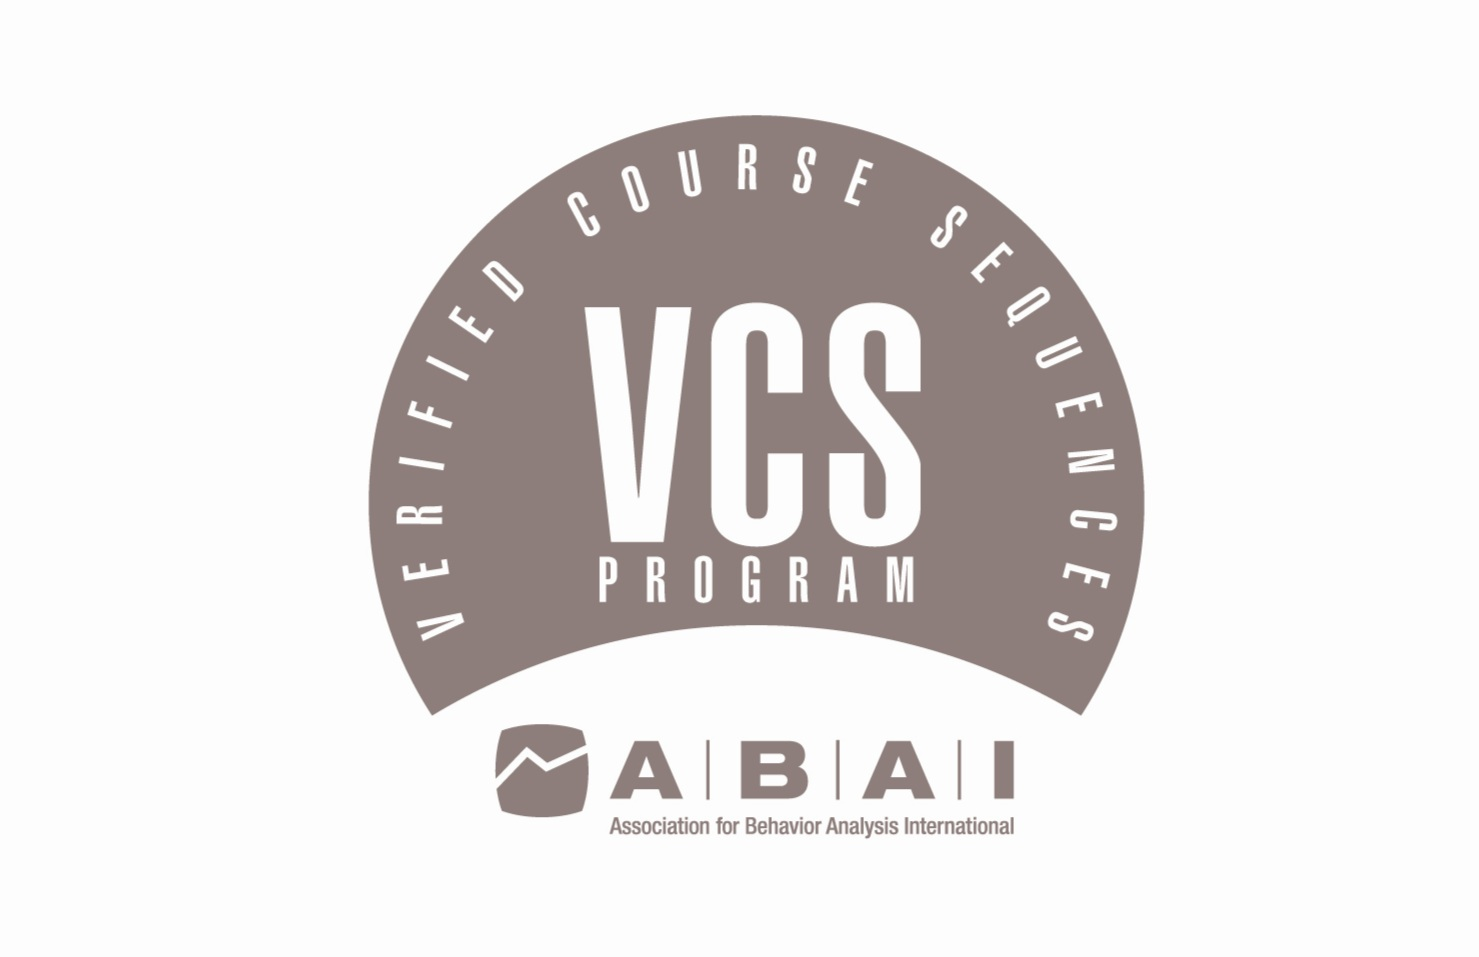 ABAI_VCS_PROGRAM_2019+-white+background.jpg